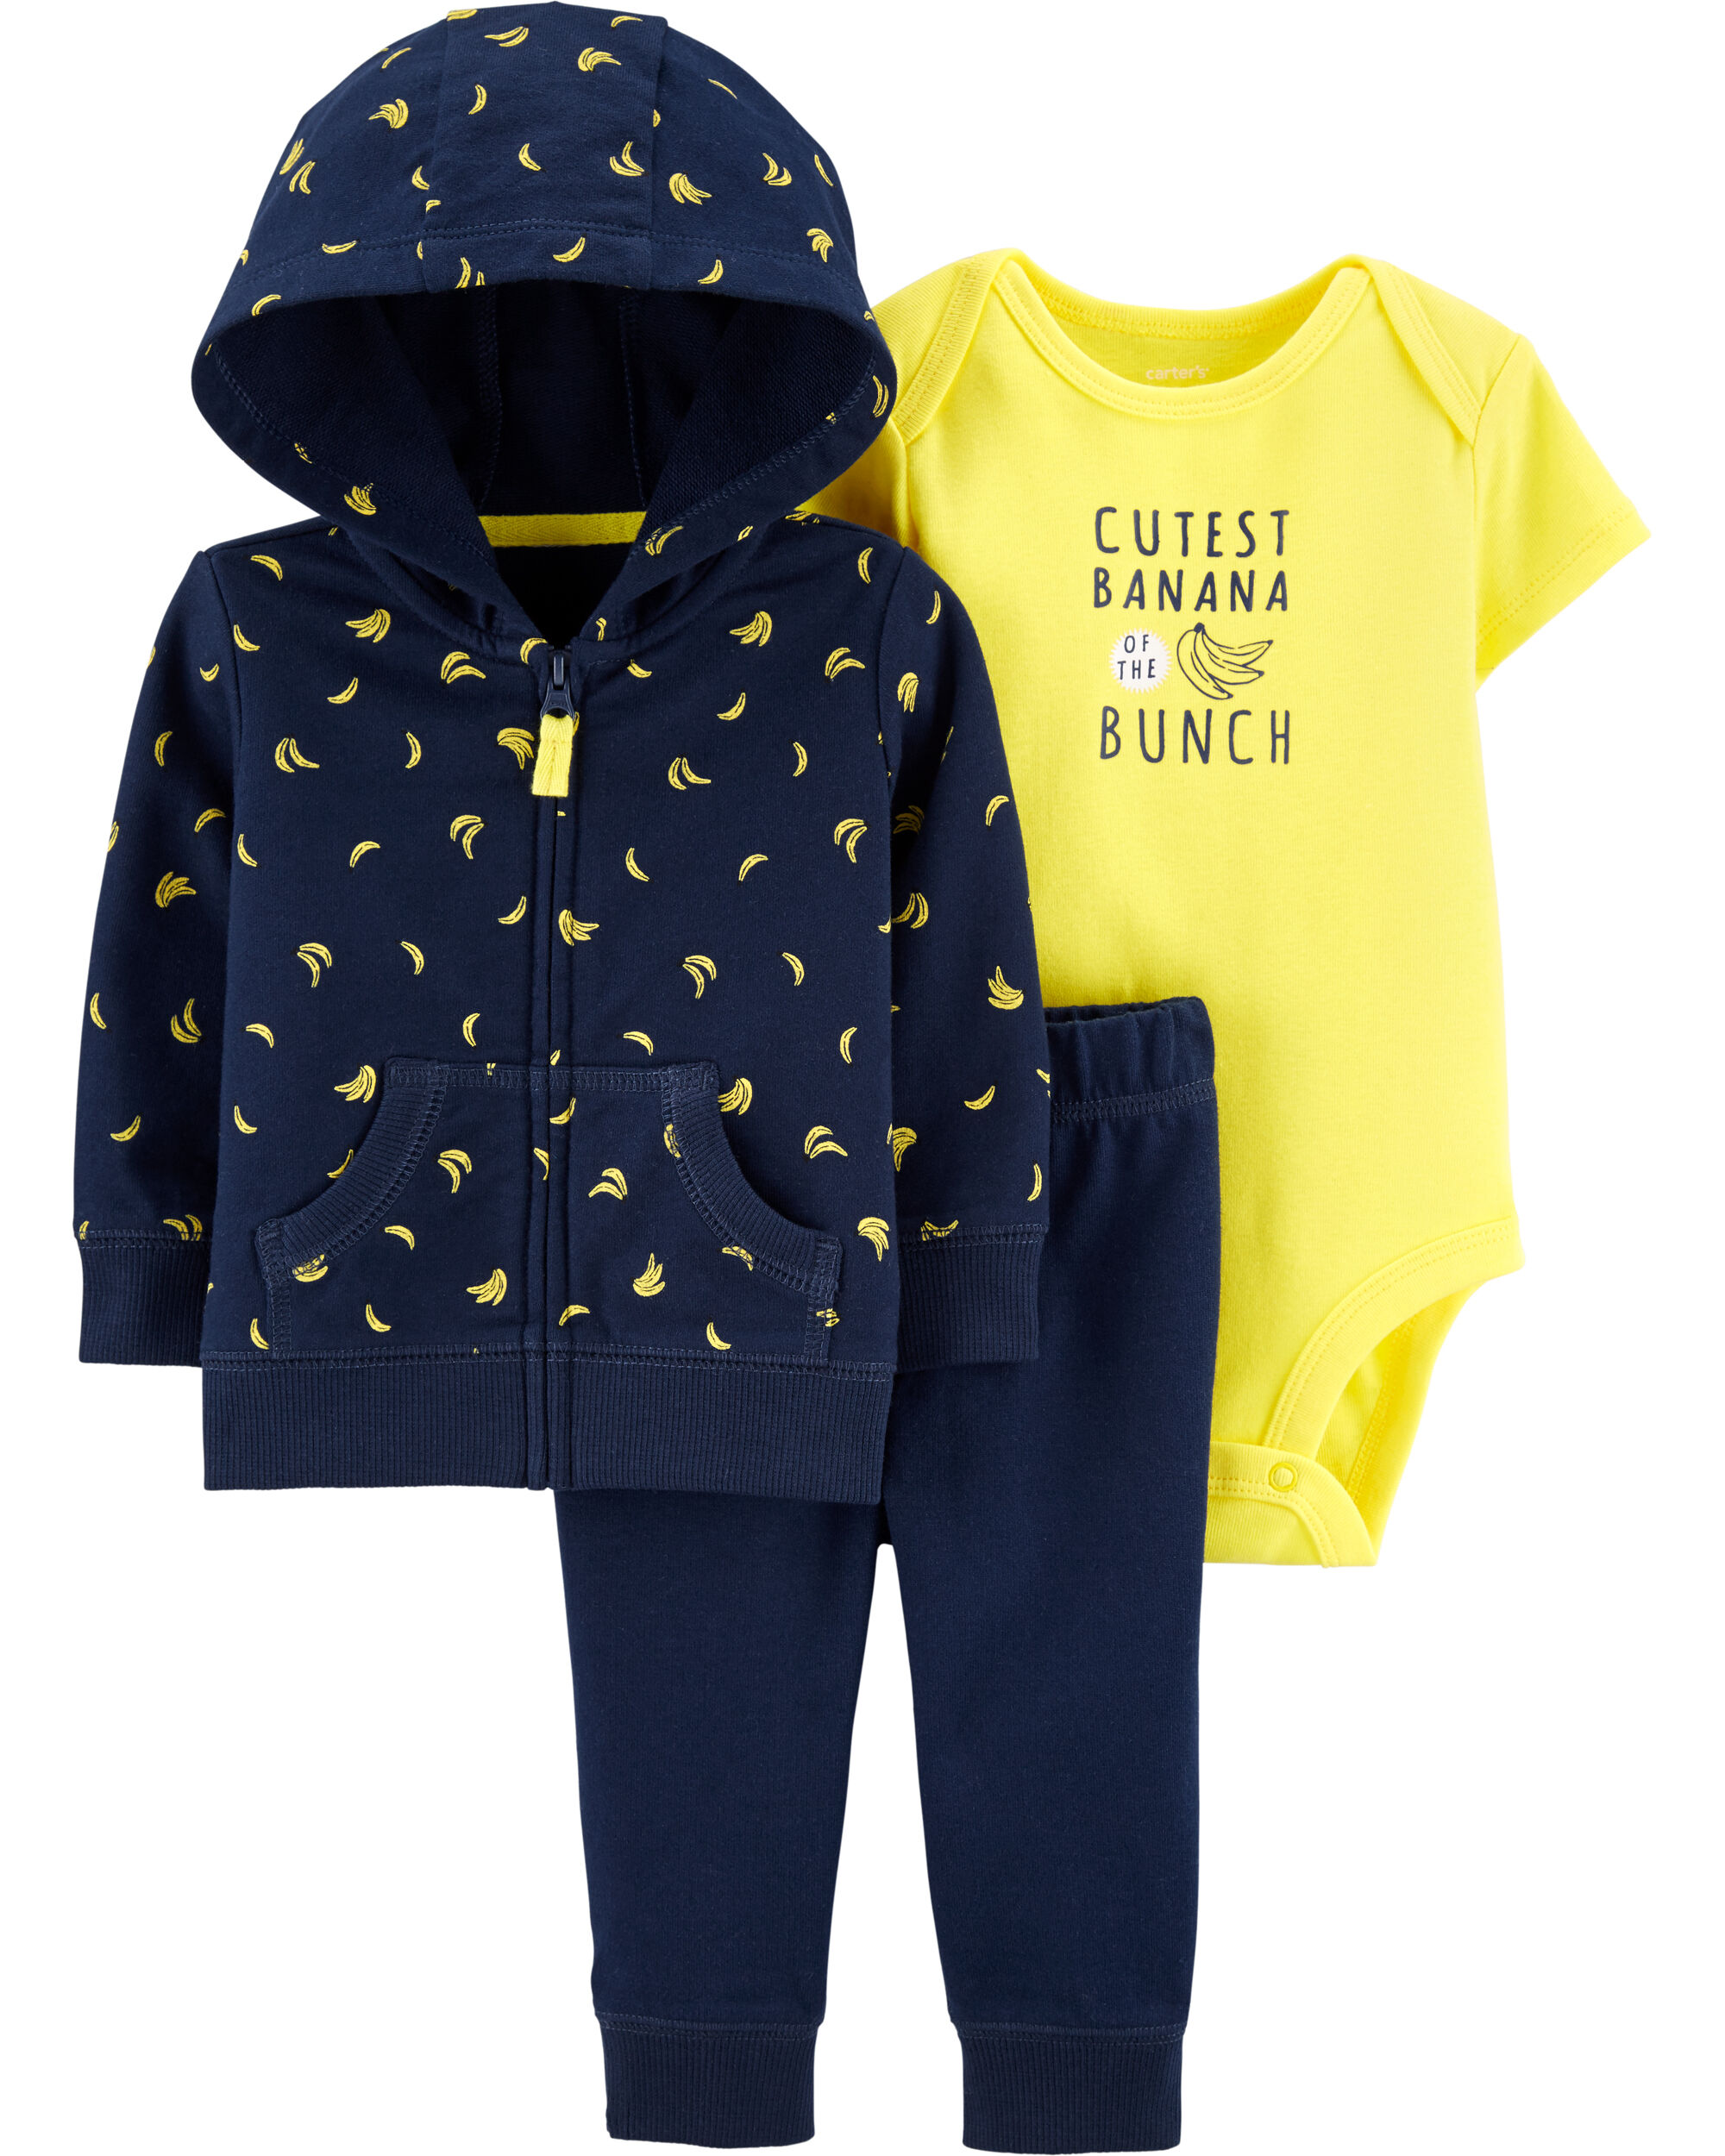 *DOORBUSTER* 3-Piece Banana Little Jacket Set